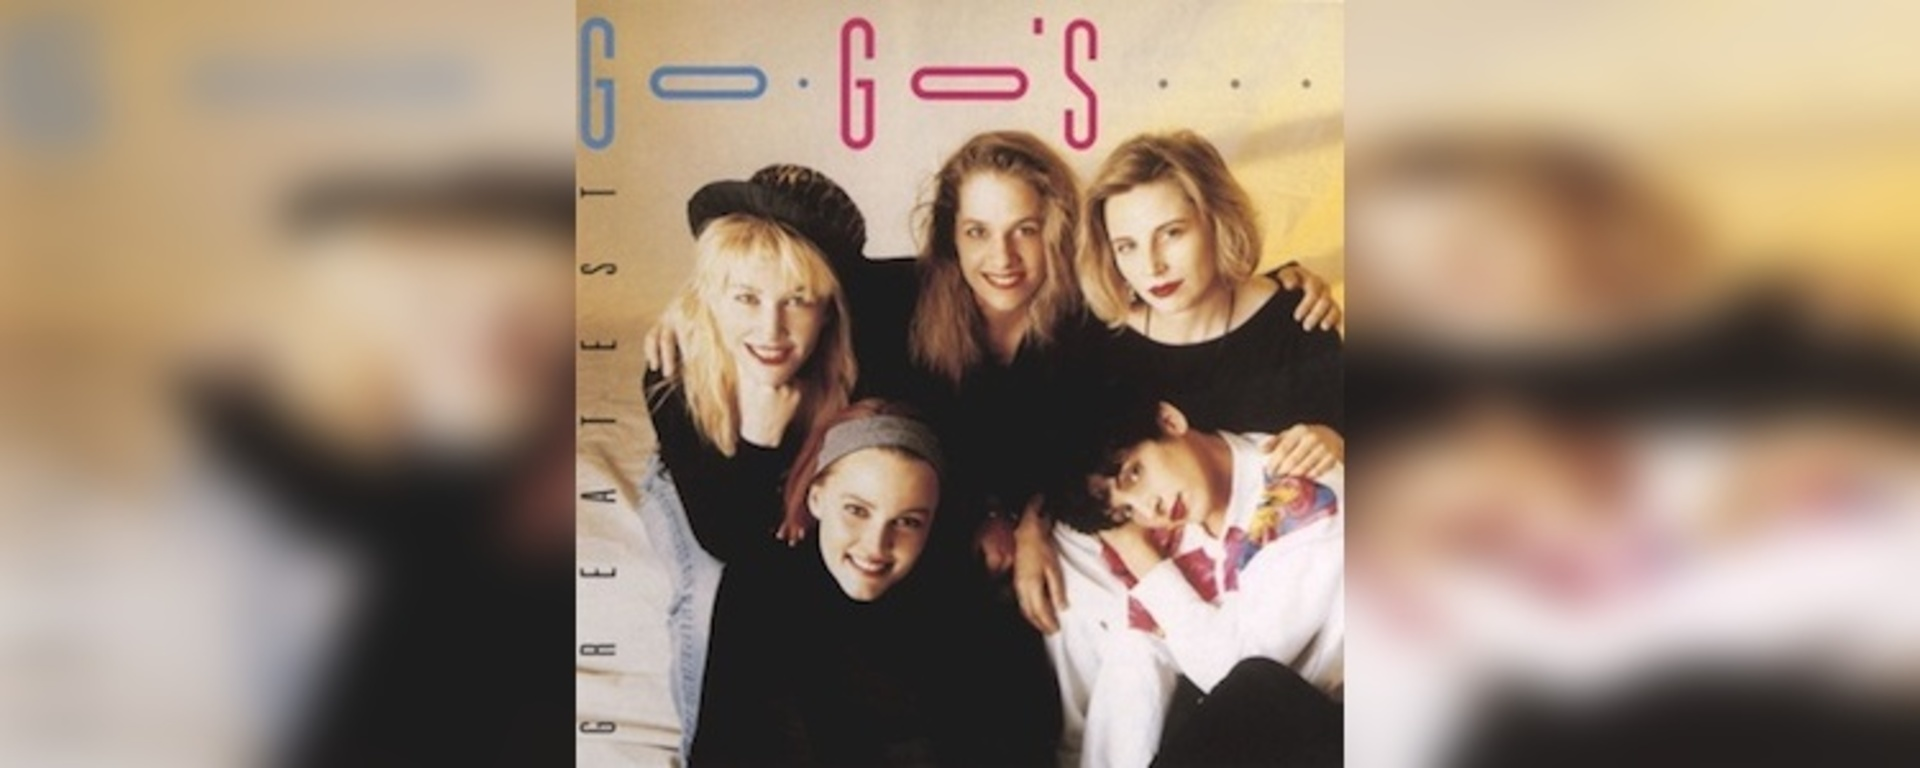 the go gos review one of the finest documentary on rock jpg?fit=1920,768&quality=80&zoom=1&ssl=1.'